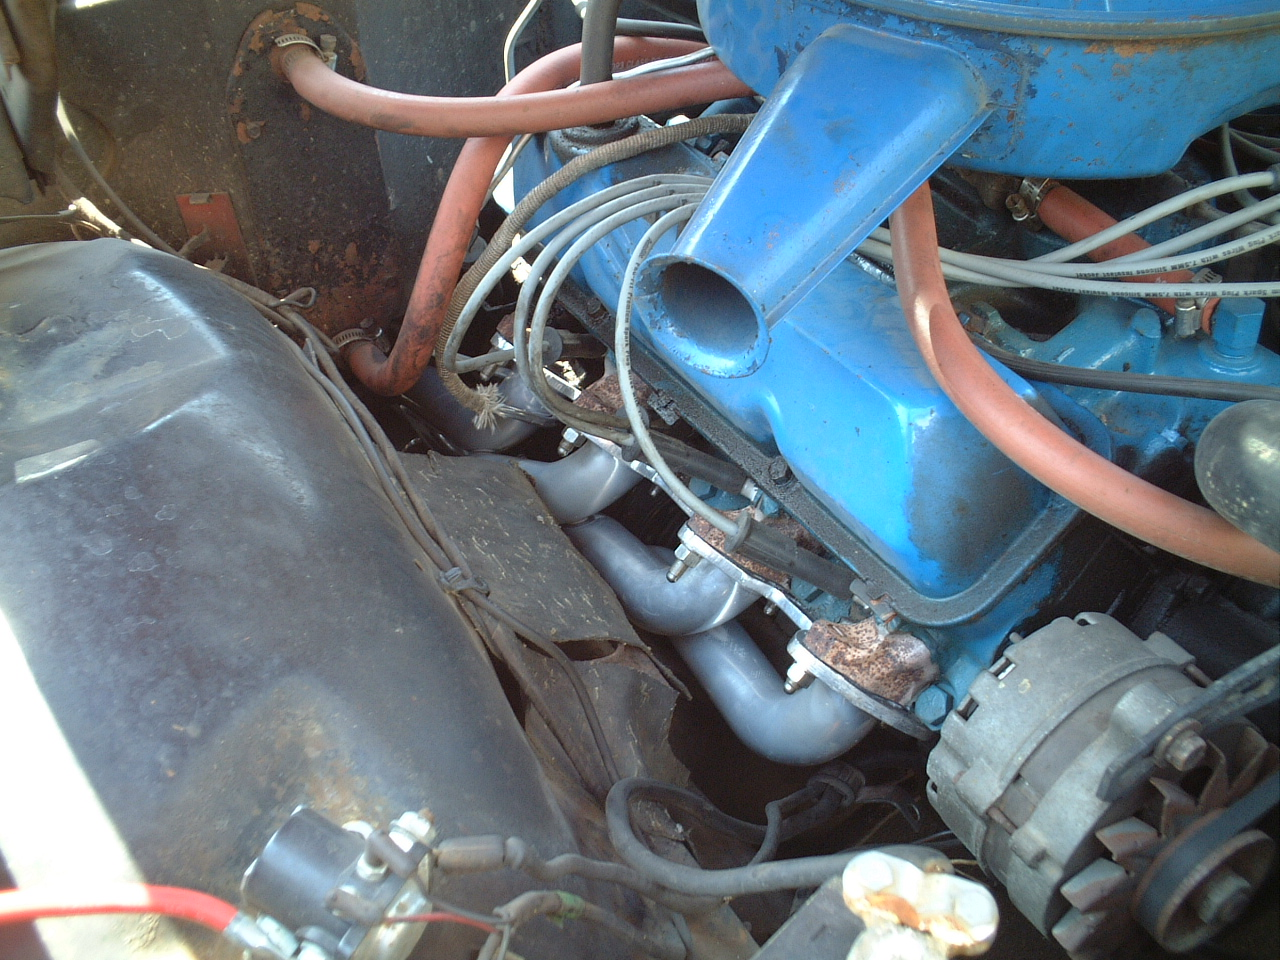 1967 Ford Galaxie Hooker Headers & X-pipe Exhaust - 08/2002 picture